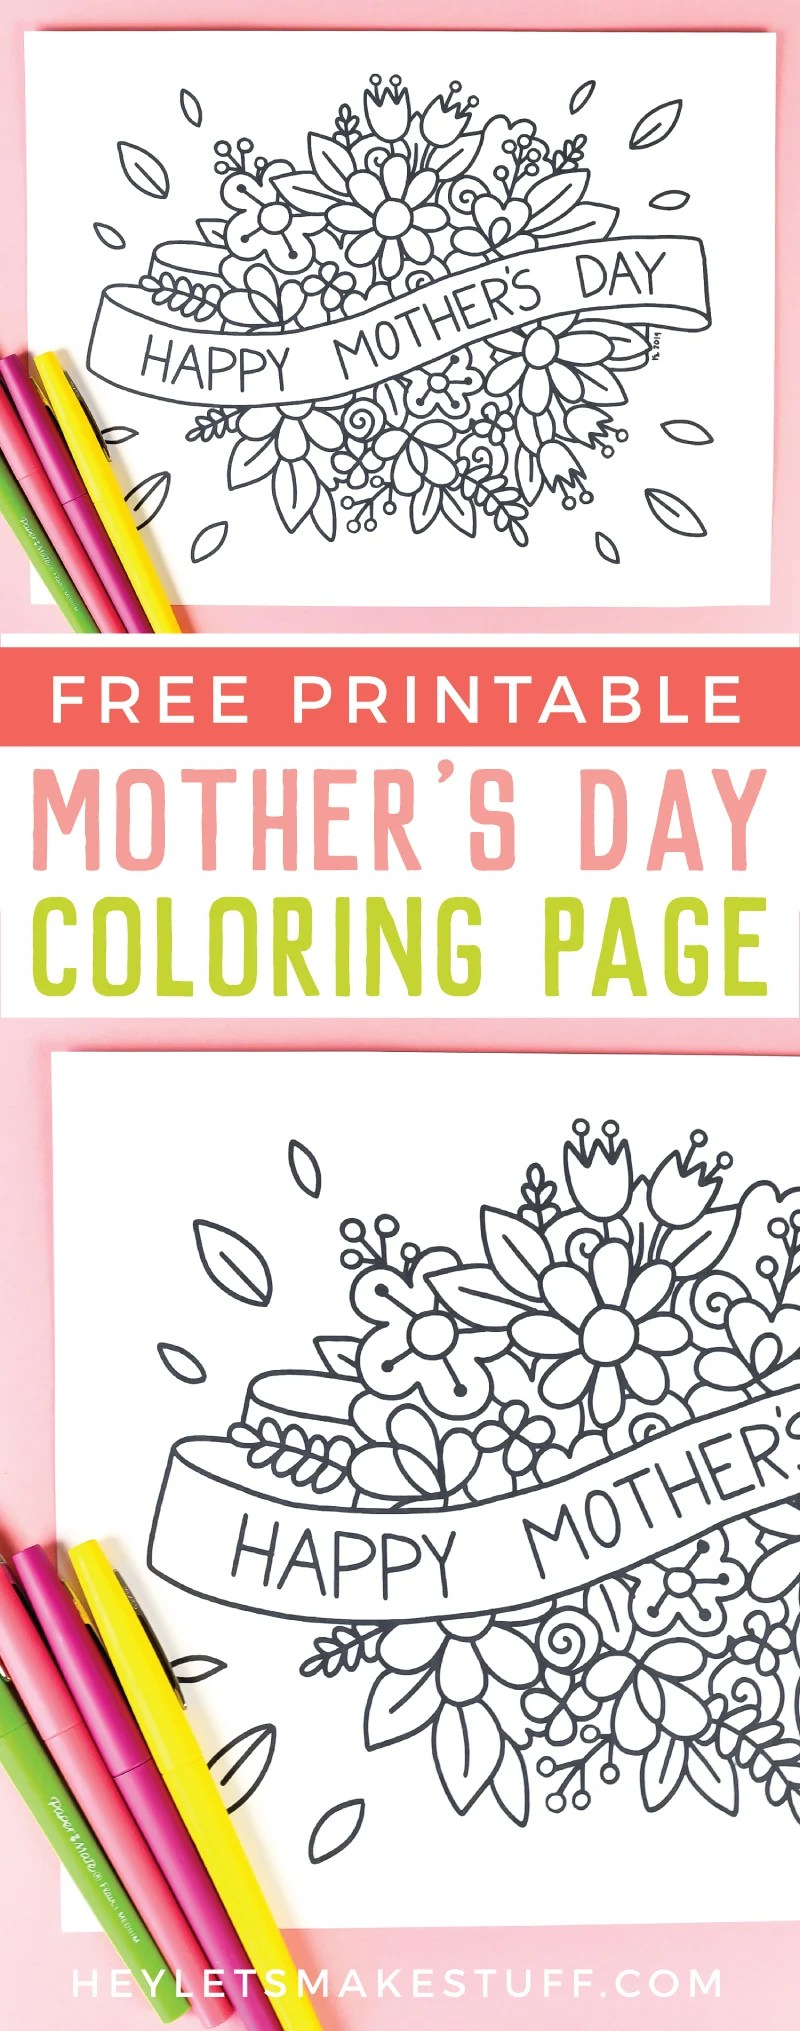 This free printable Mother's Day coloring page is just for Mom! Beautiful flowers are just waiting to be filled in with colorful personality. Print it out for free! via @heyletsmakestuf